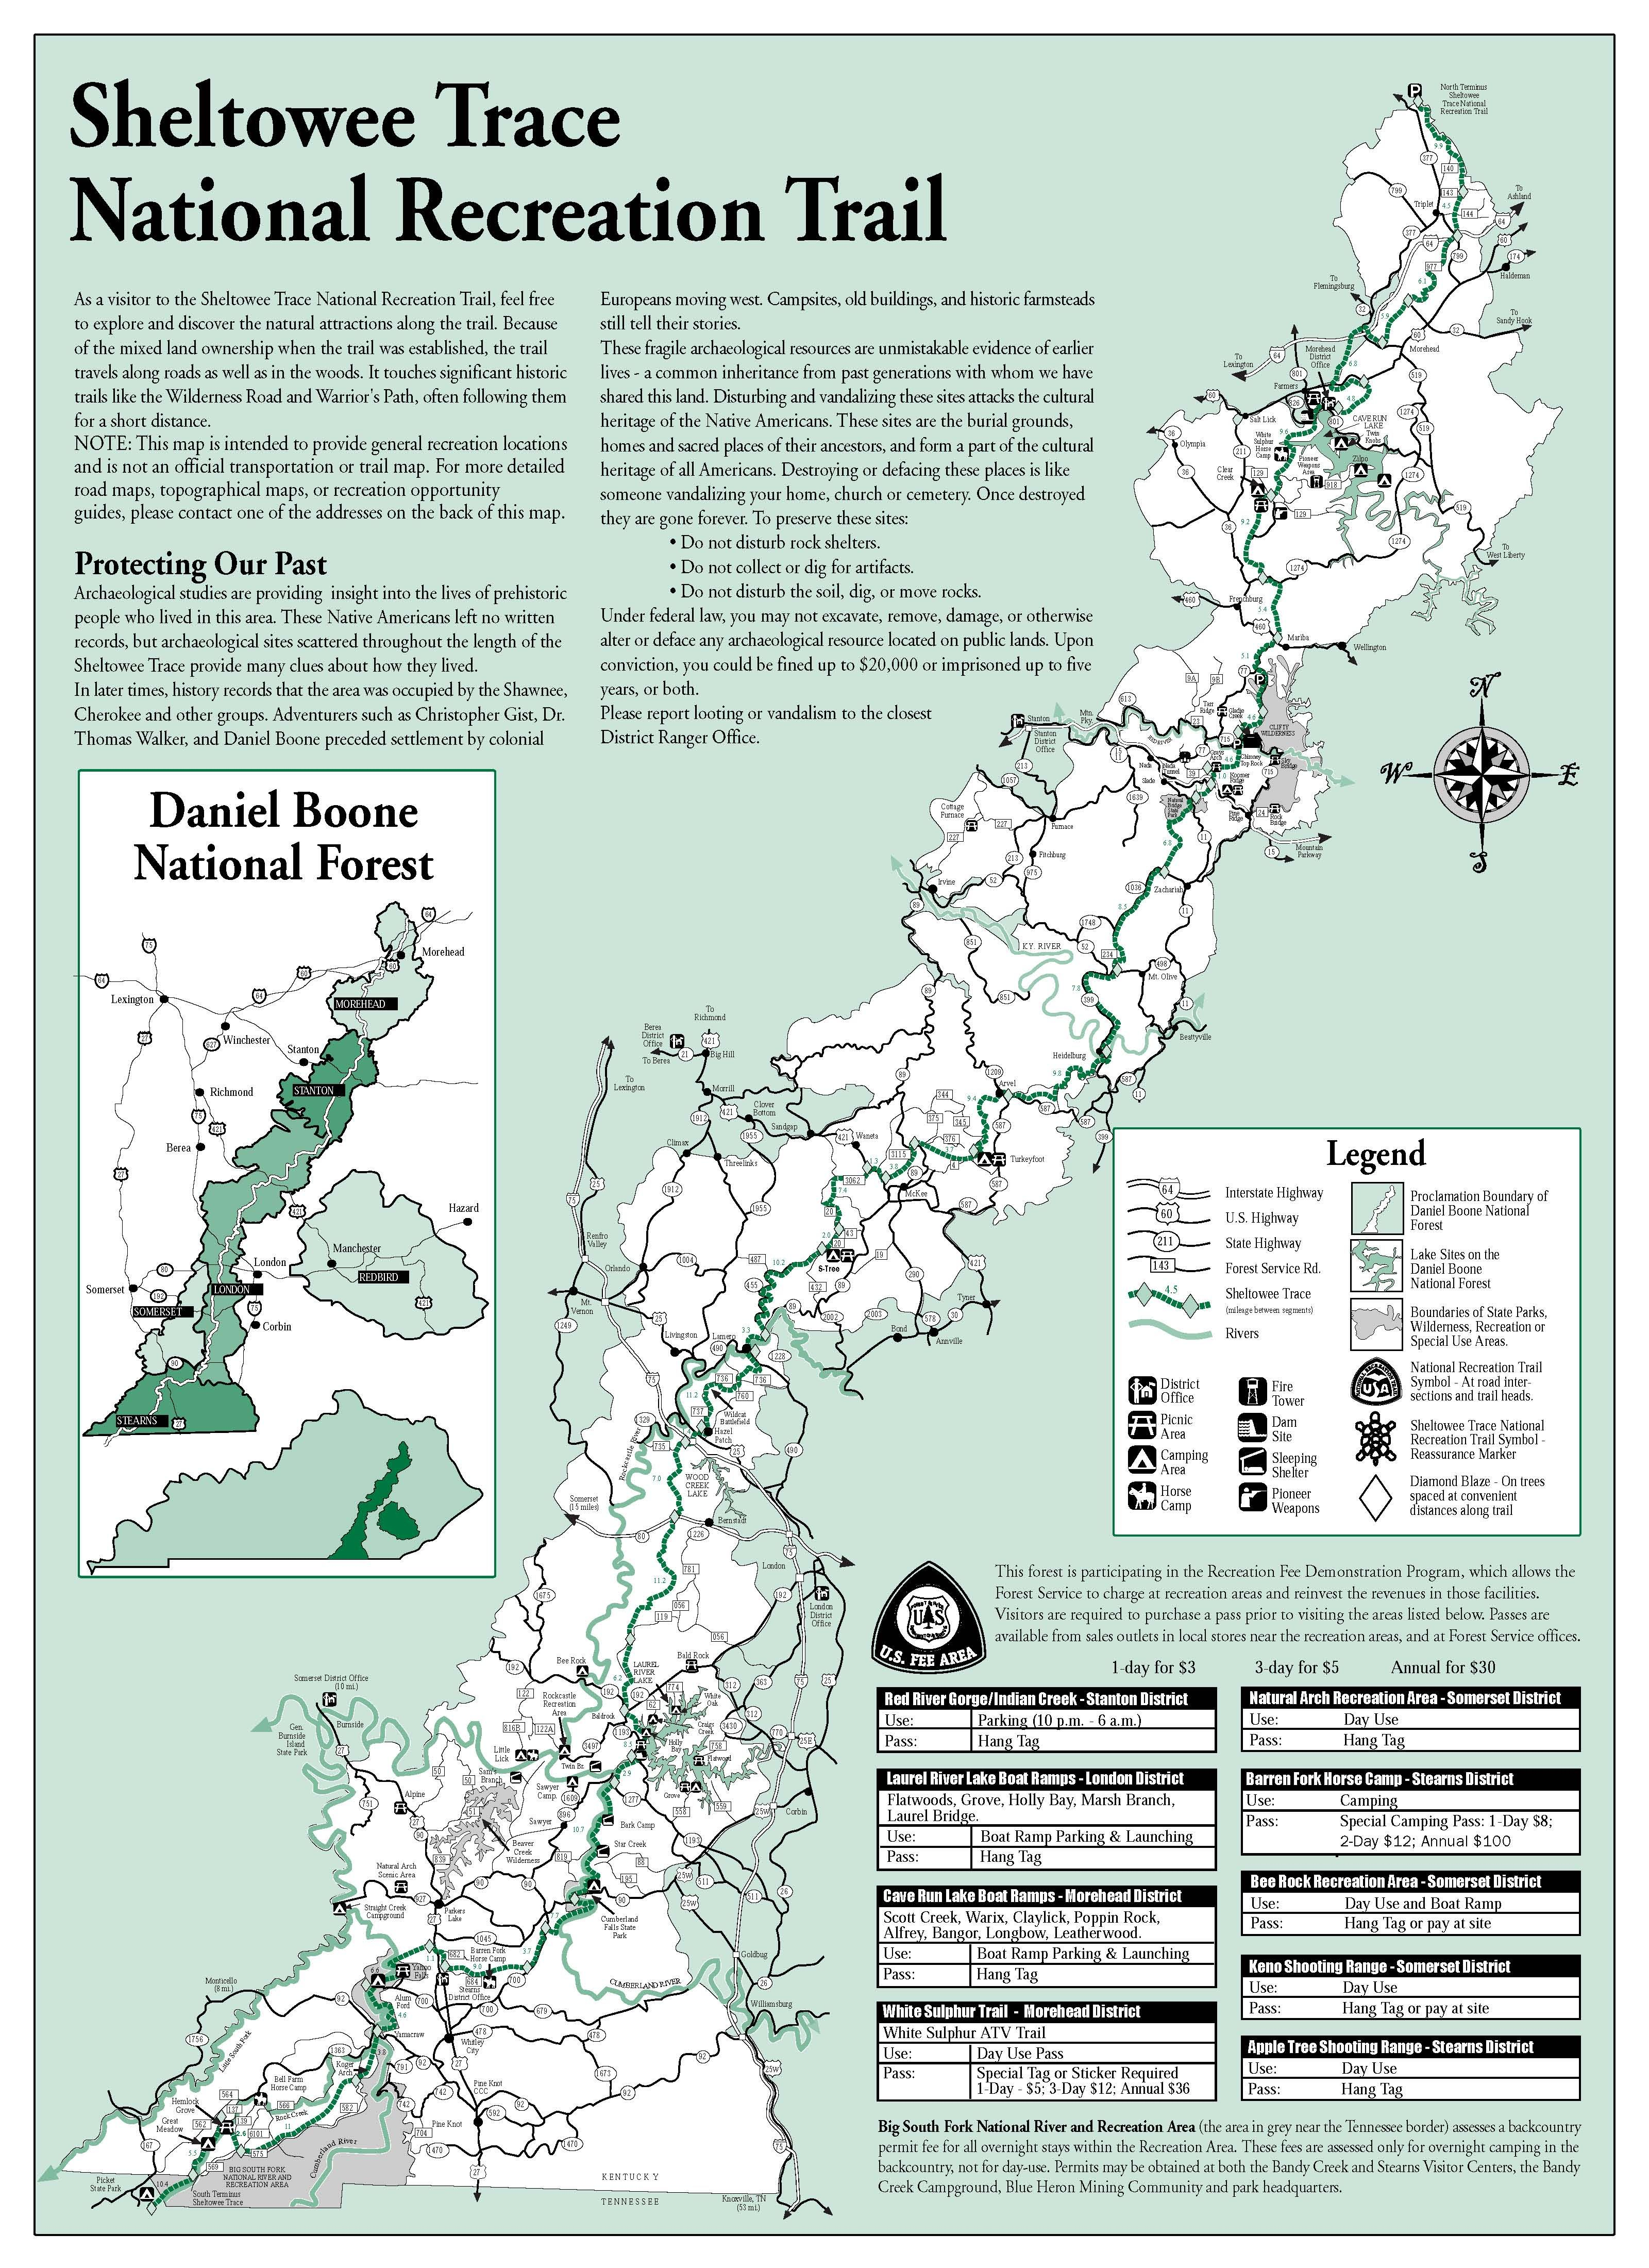 Sheltowee Trace Trail Map Through Daniel Boone National